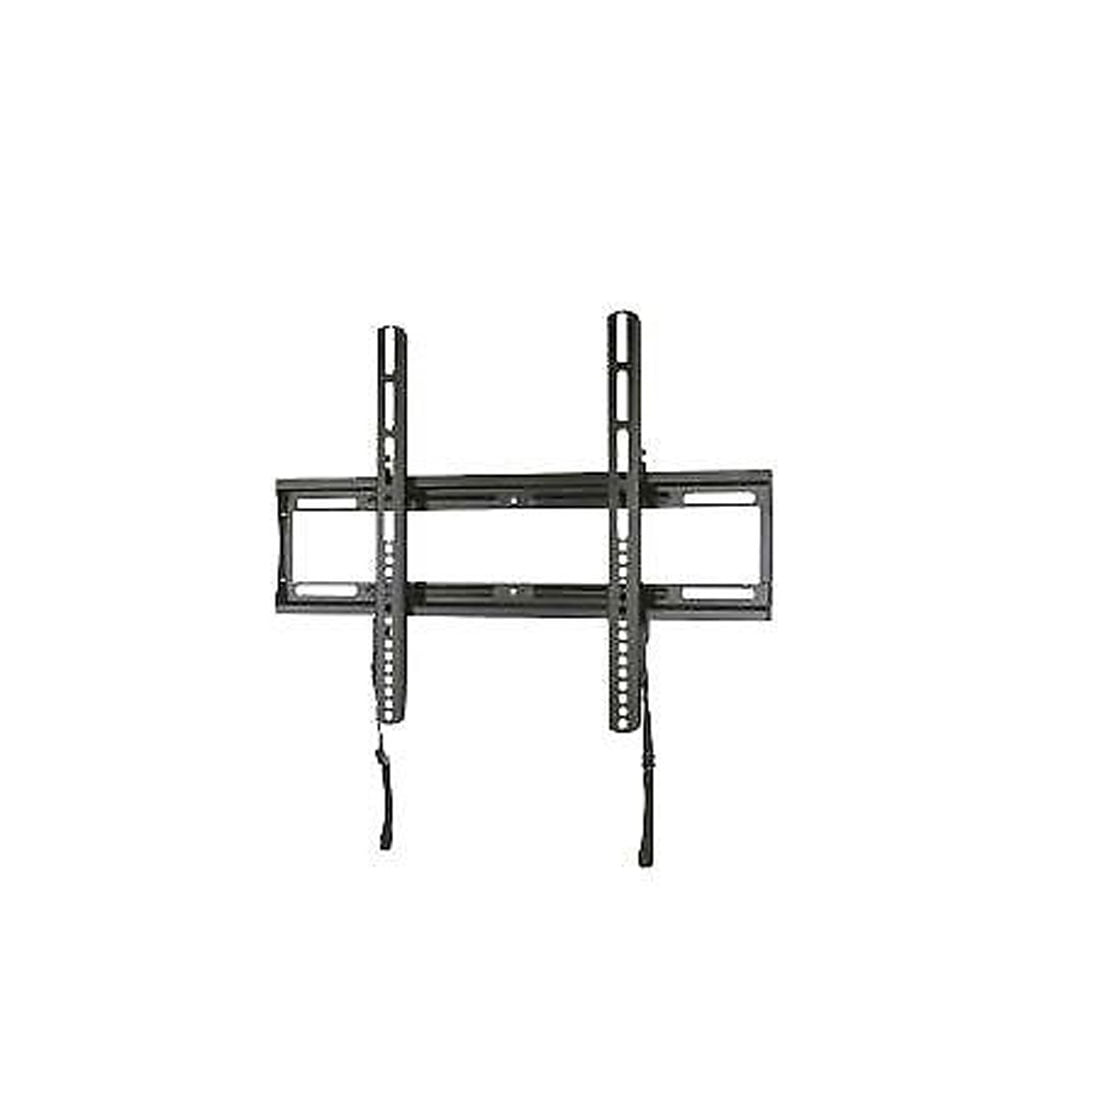 Sqll22 B2 Low Profile Wall Mount For Tvs 40 70